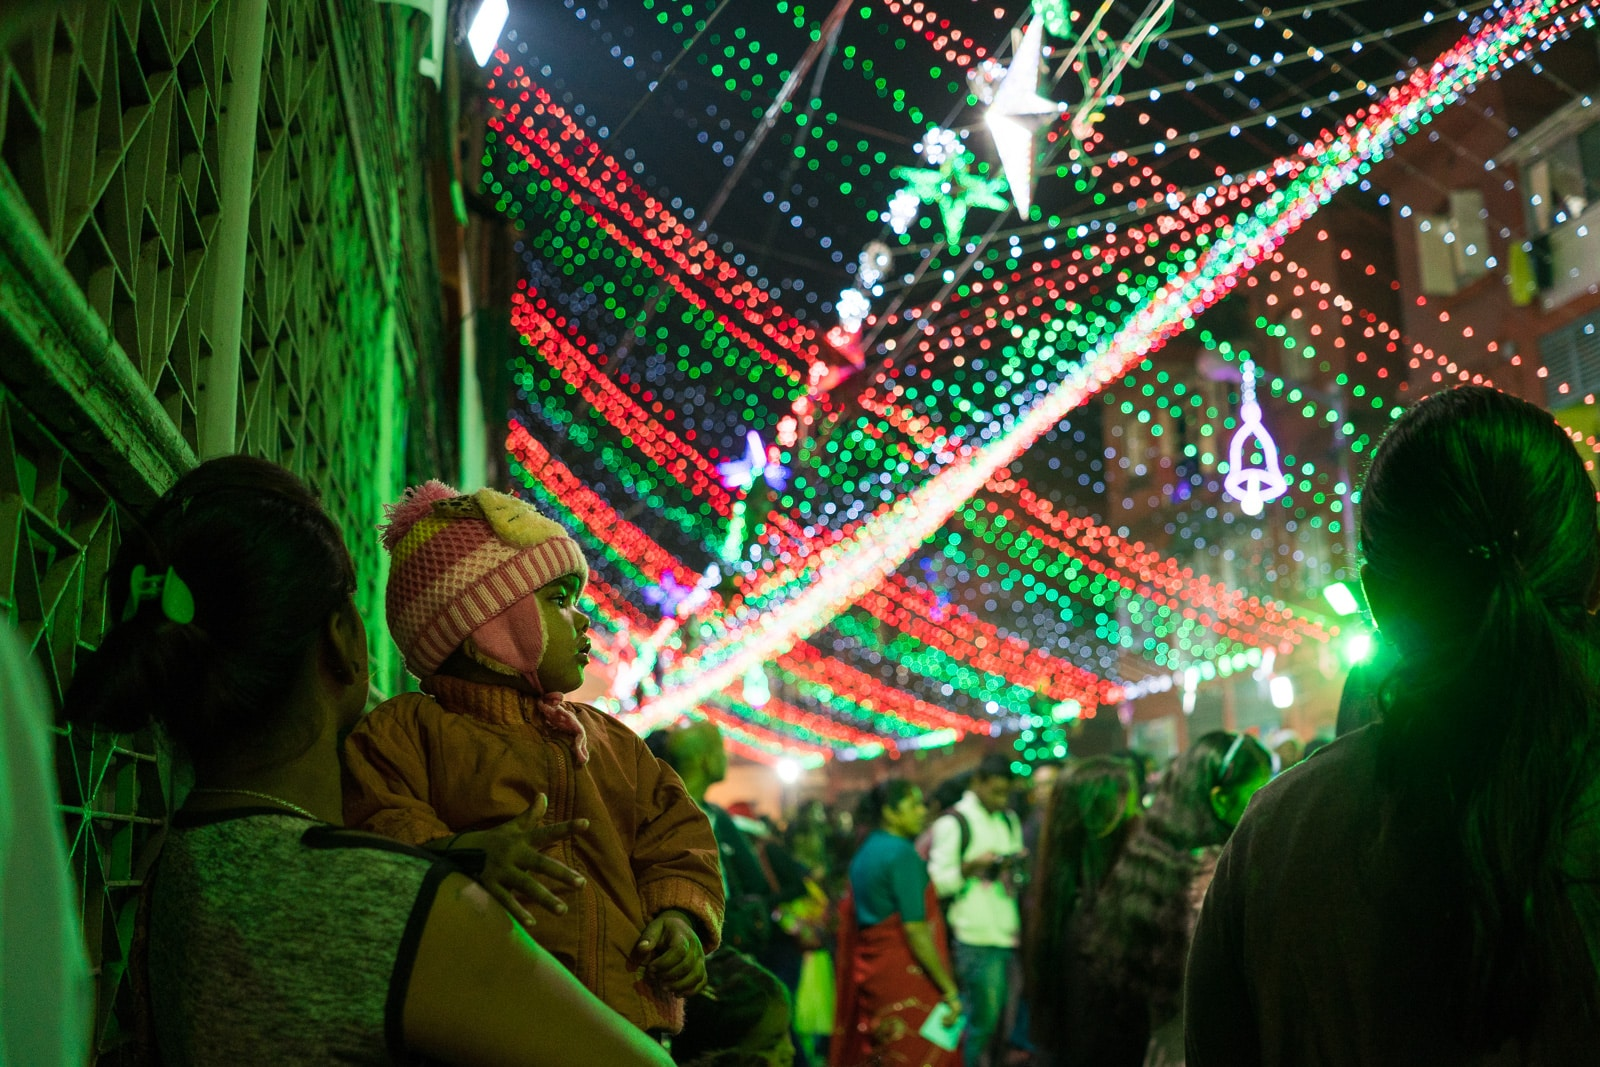 Celebrating Christmas in Kolkata, India - A child looking at Christmas lights in Barracks on Christmas Eve - Lost With Purpose travel blog